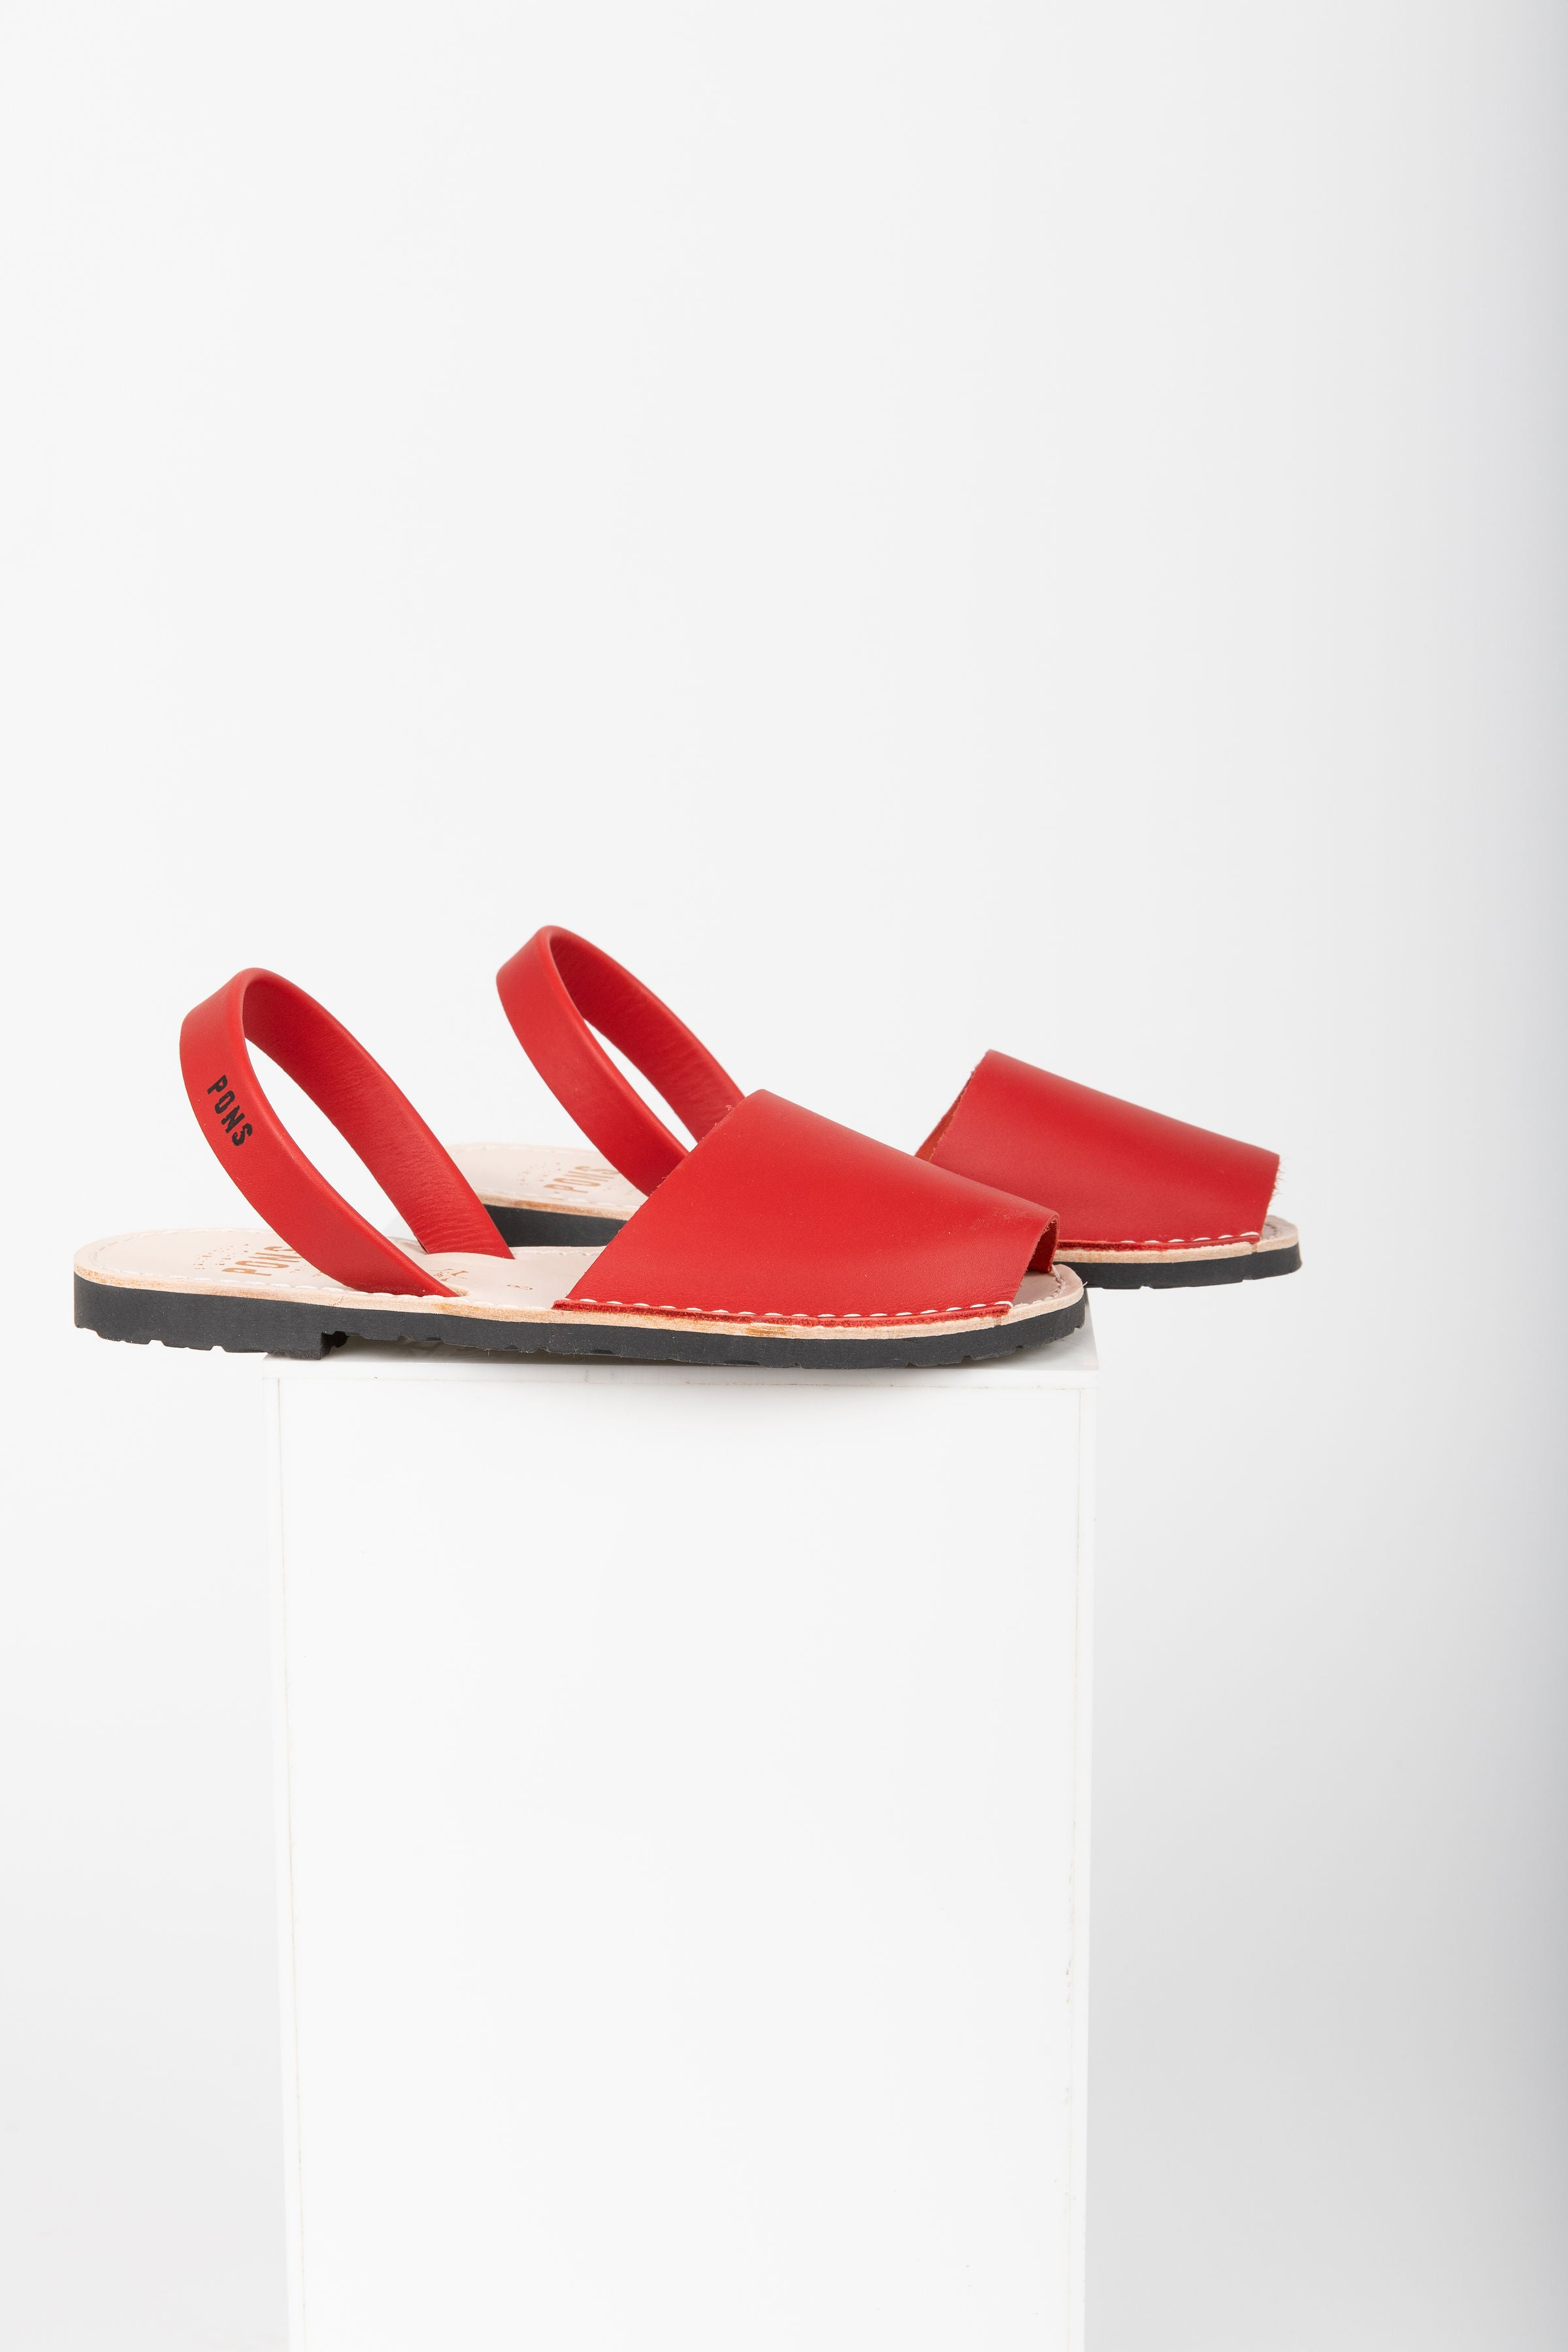 PONS: Classic Style in Red